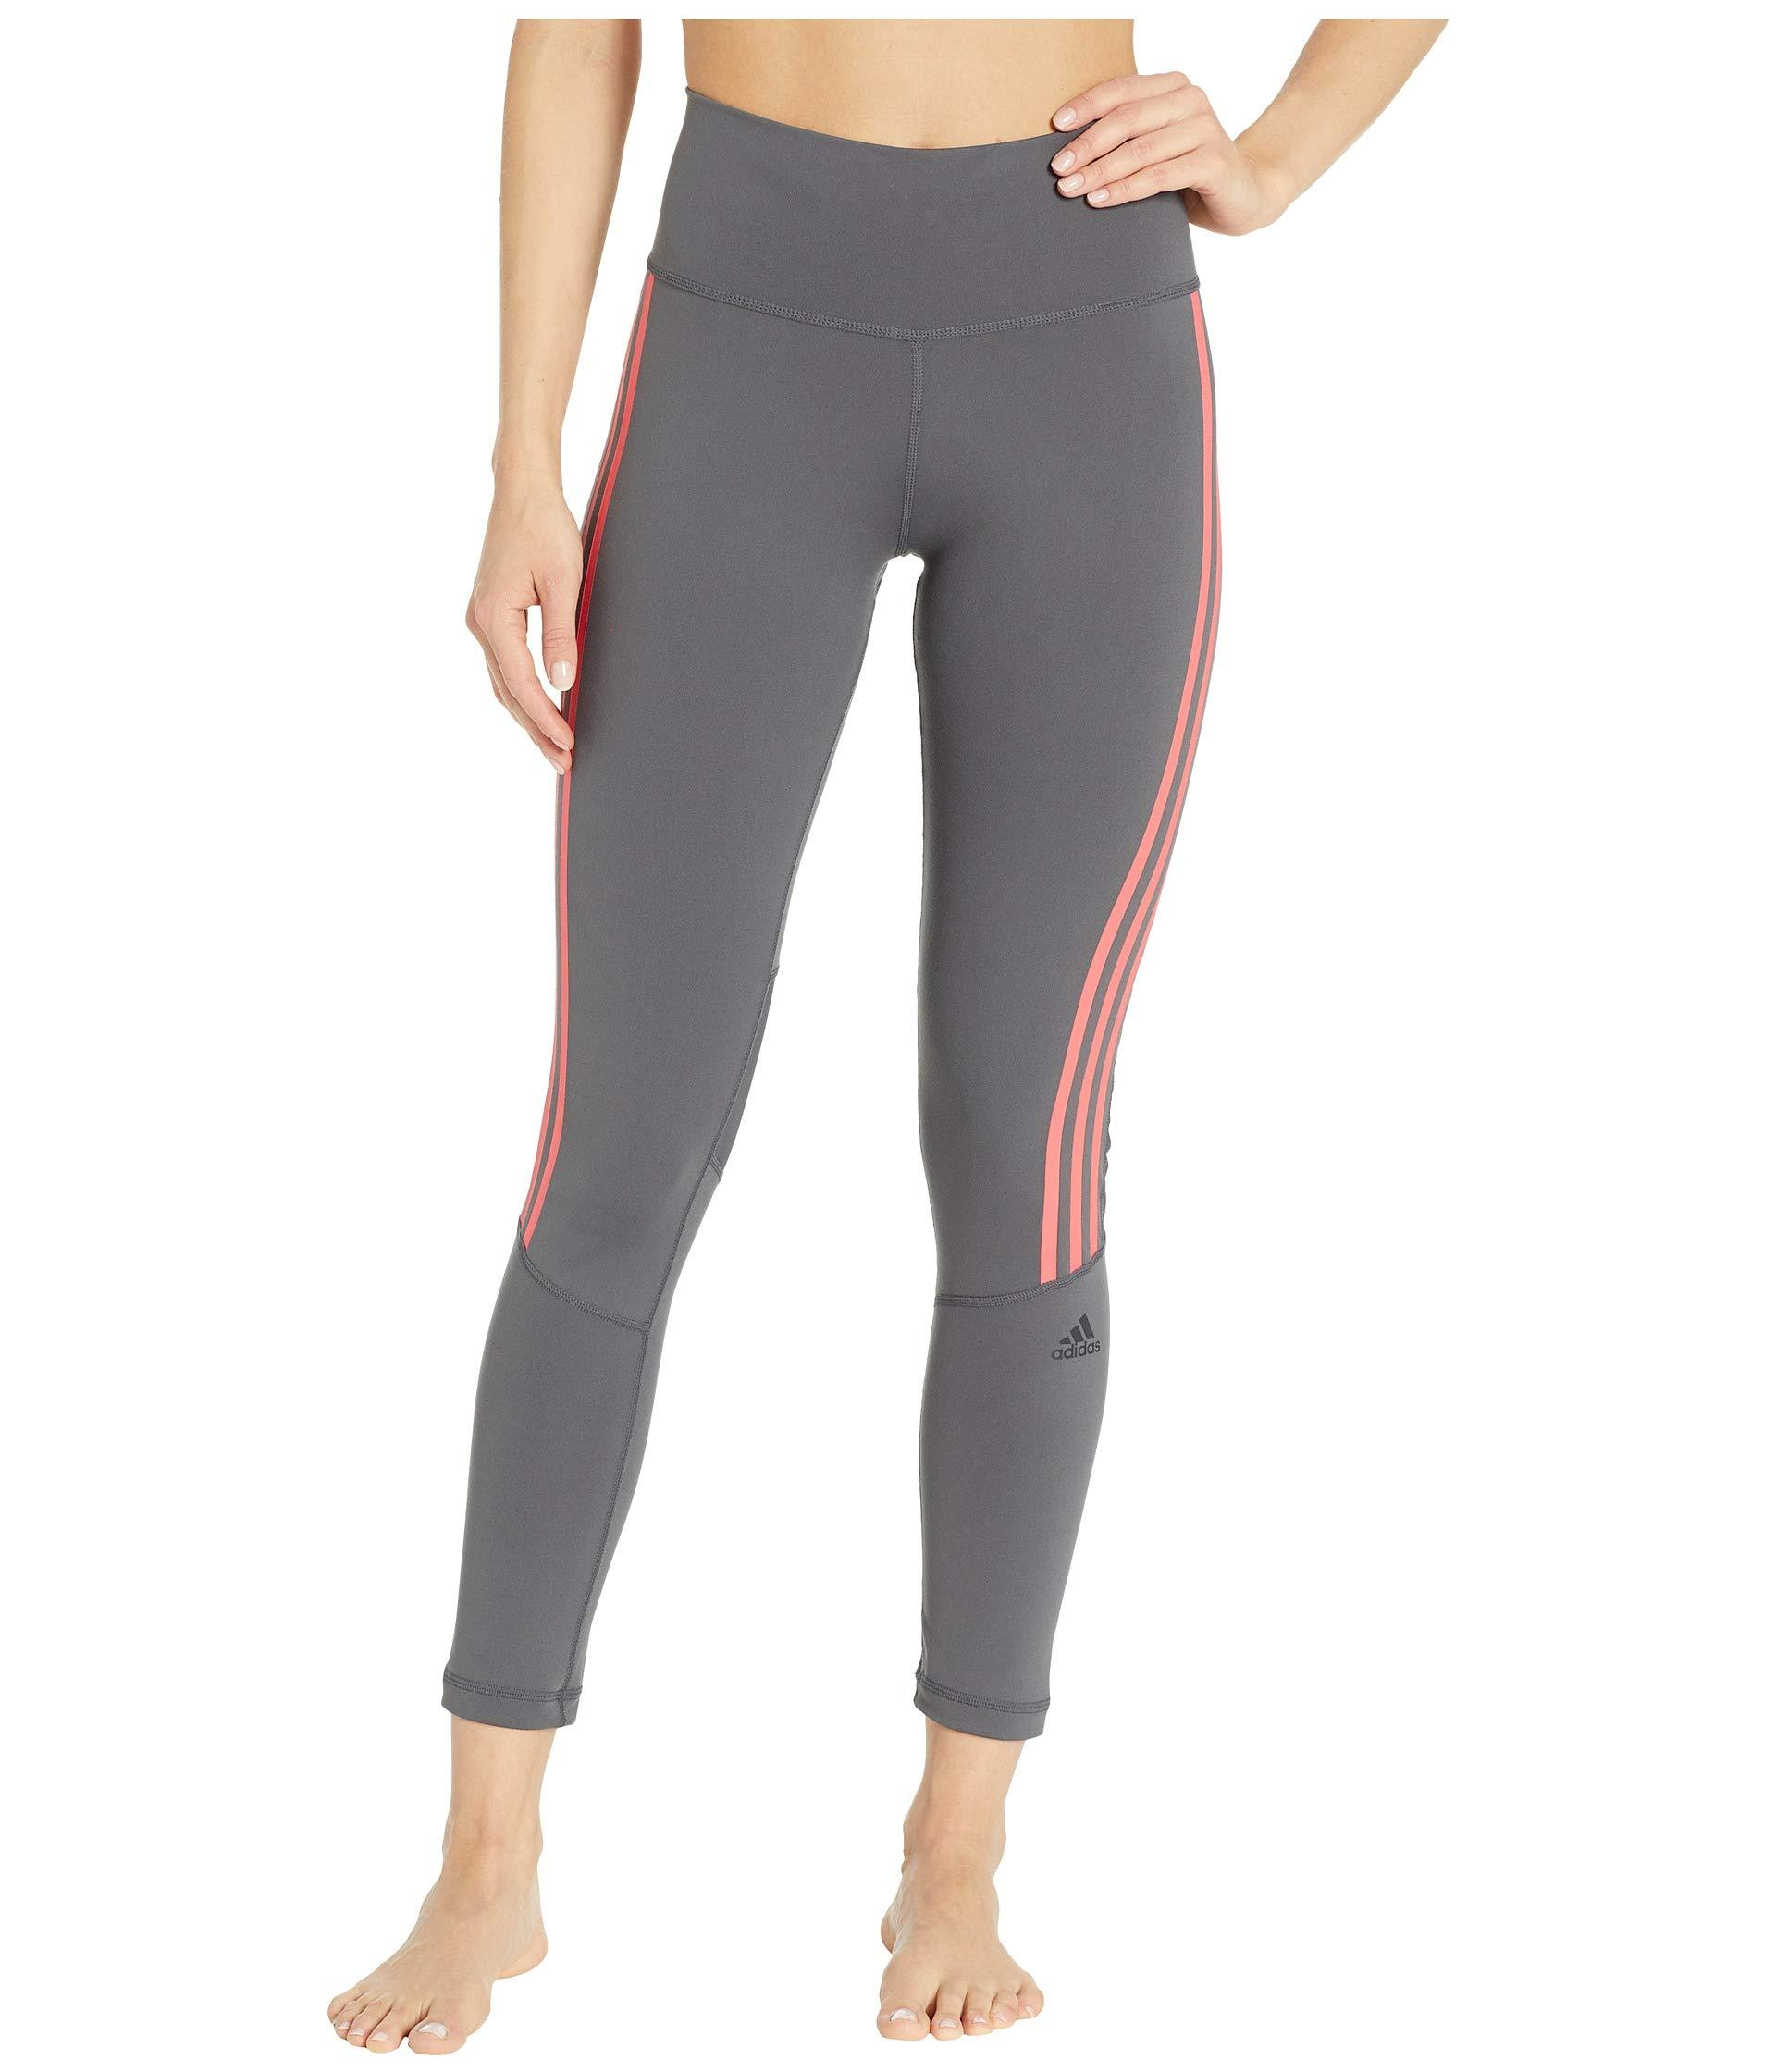 737f928361a9 Lyst - adidas Believe This High-rise 3-stripes 7 8 Tights (black ...